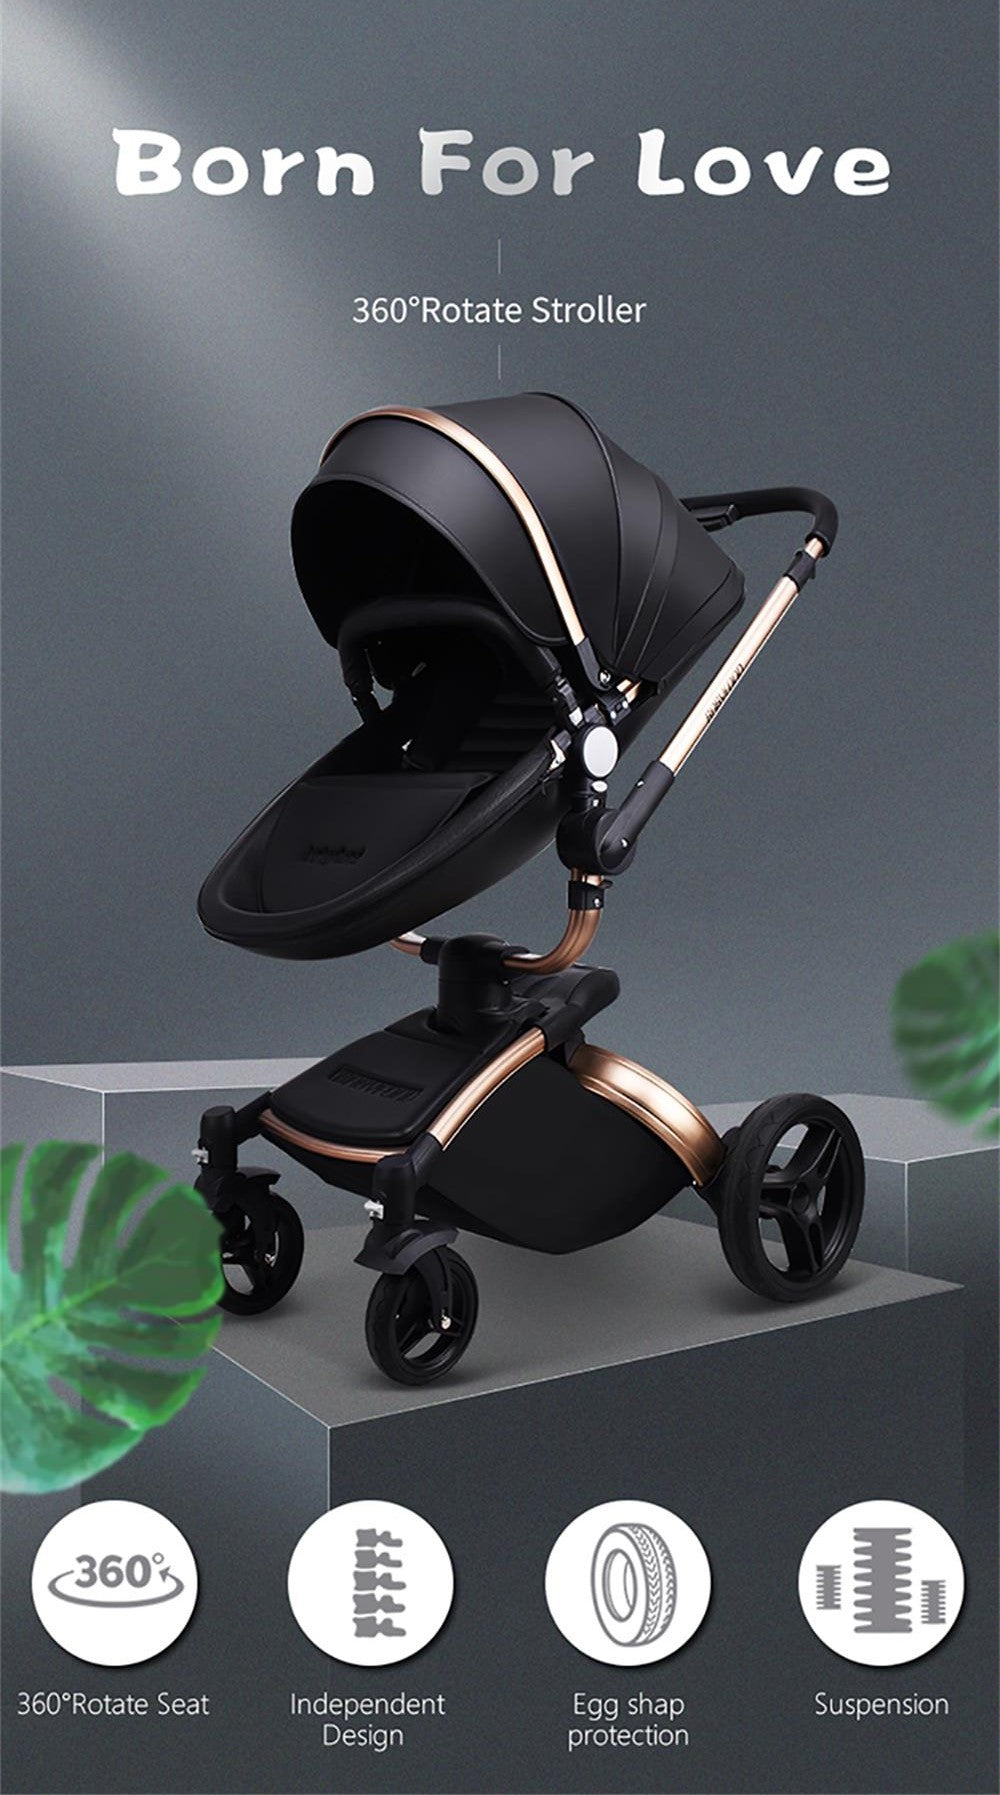 Sroller with car seat 3 in 1 free shipping to canada usa uk france germany and spain best stroller 2019 and 2020